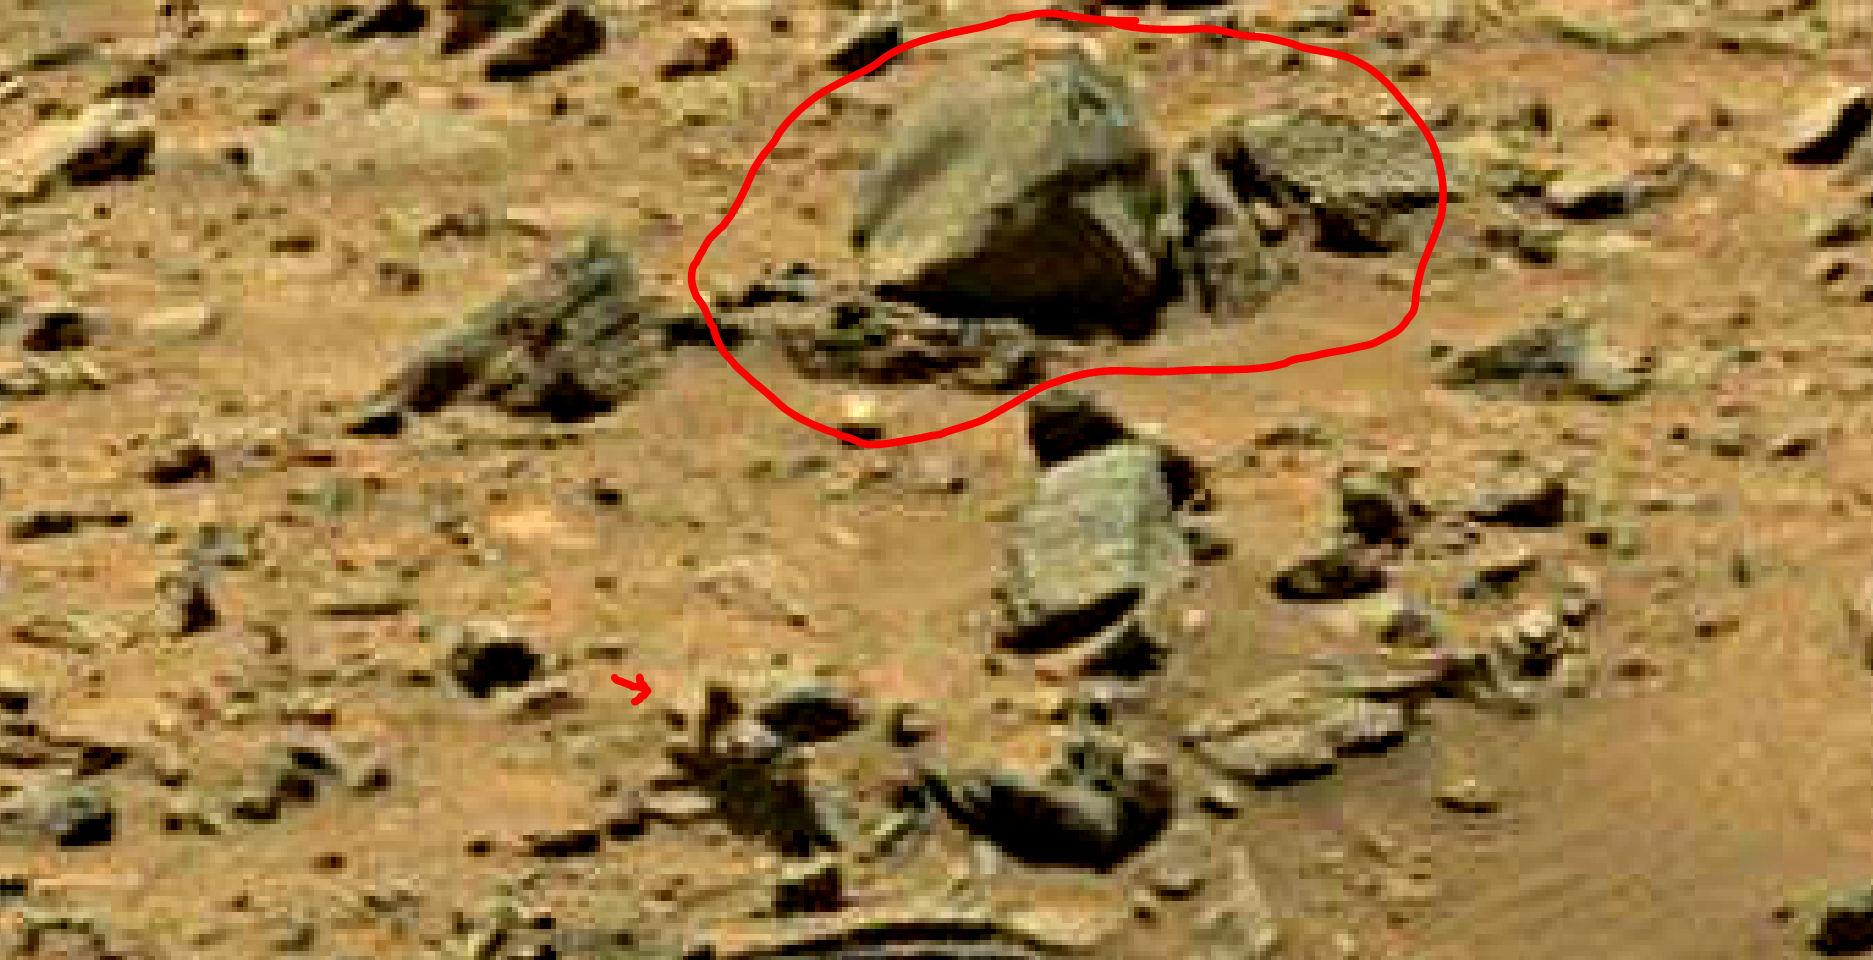 mars sol 1399 anomaly artifacts 14a was life on mars